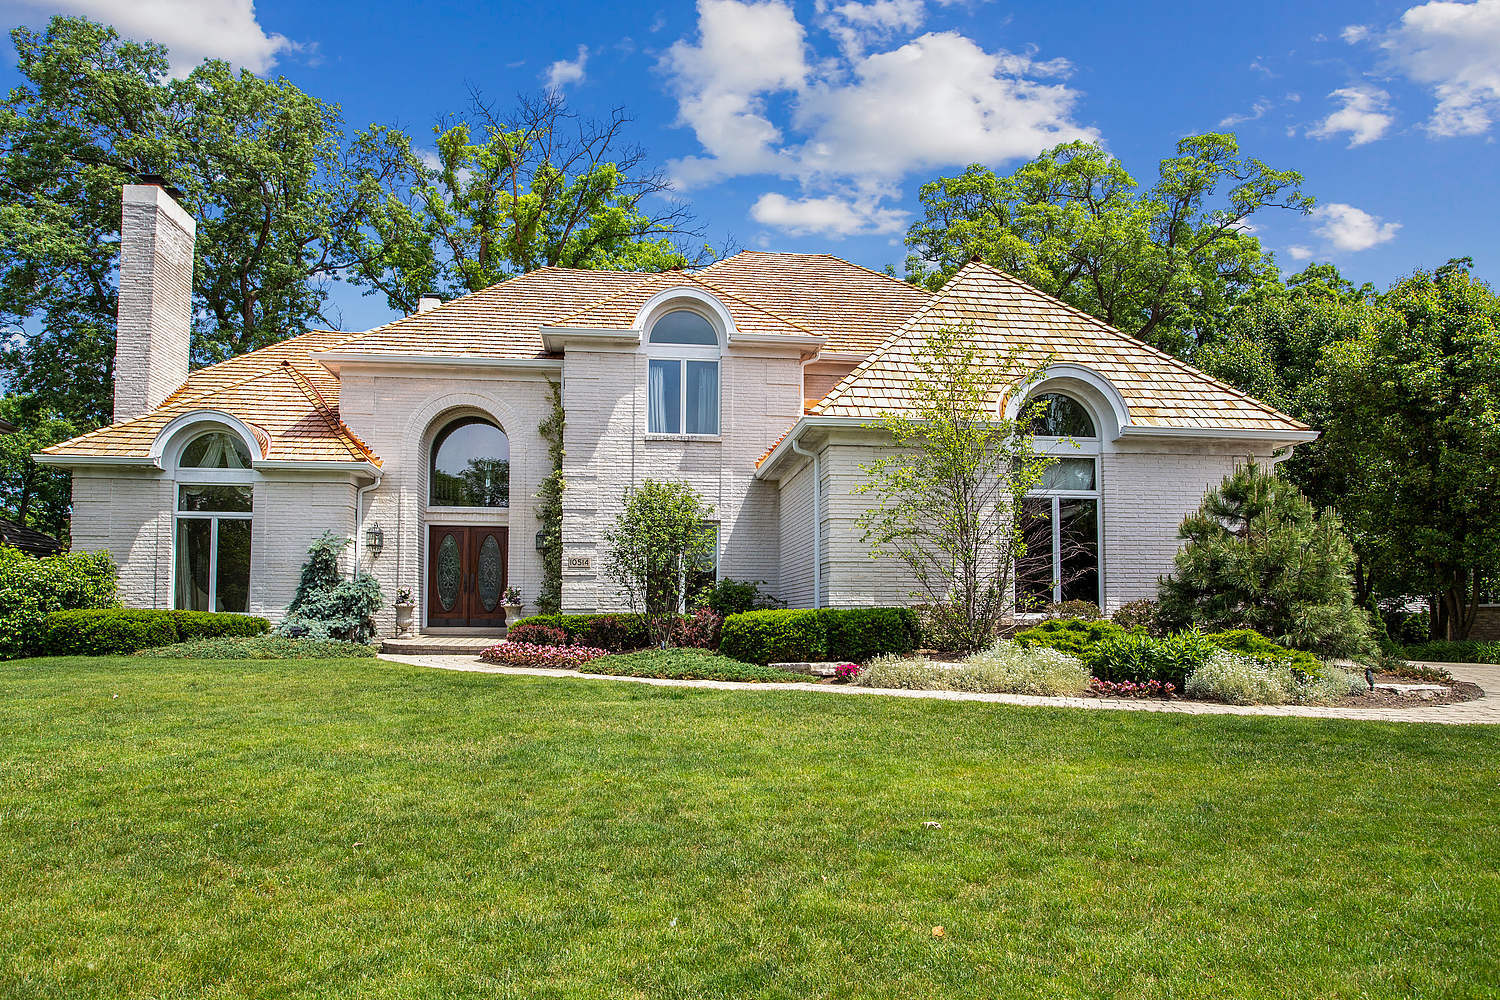 10514 Wildflower Road, Orland Park, Il 60462